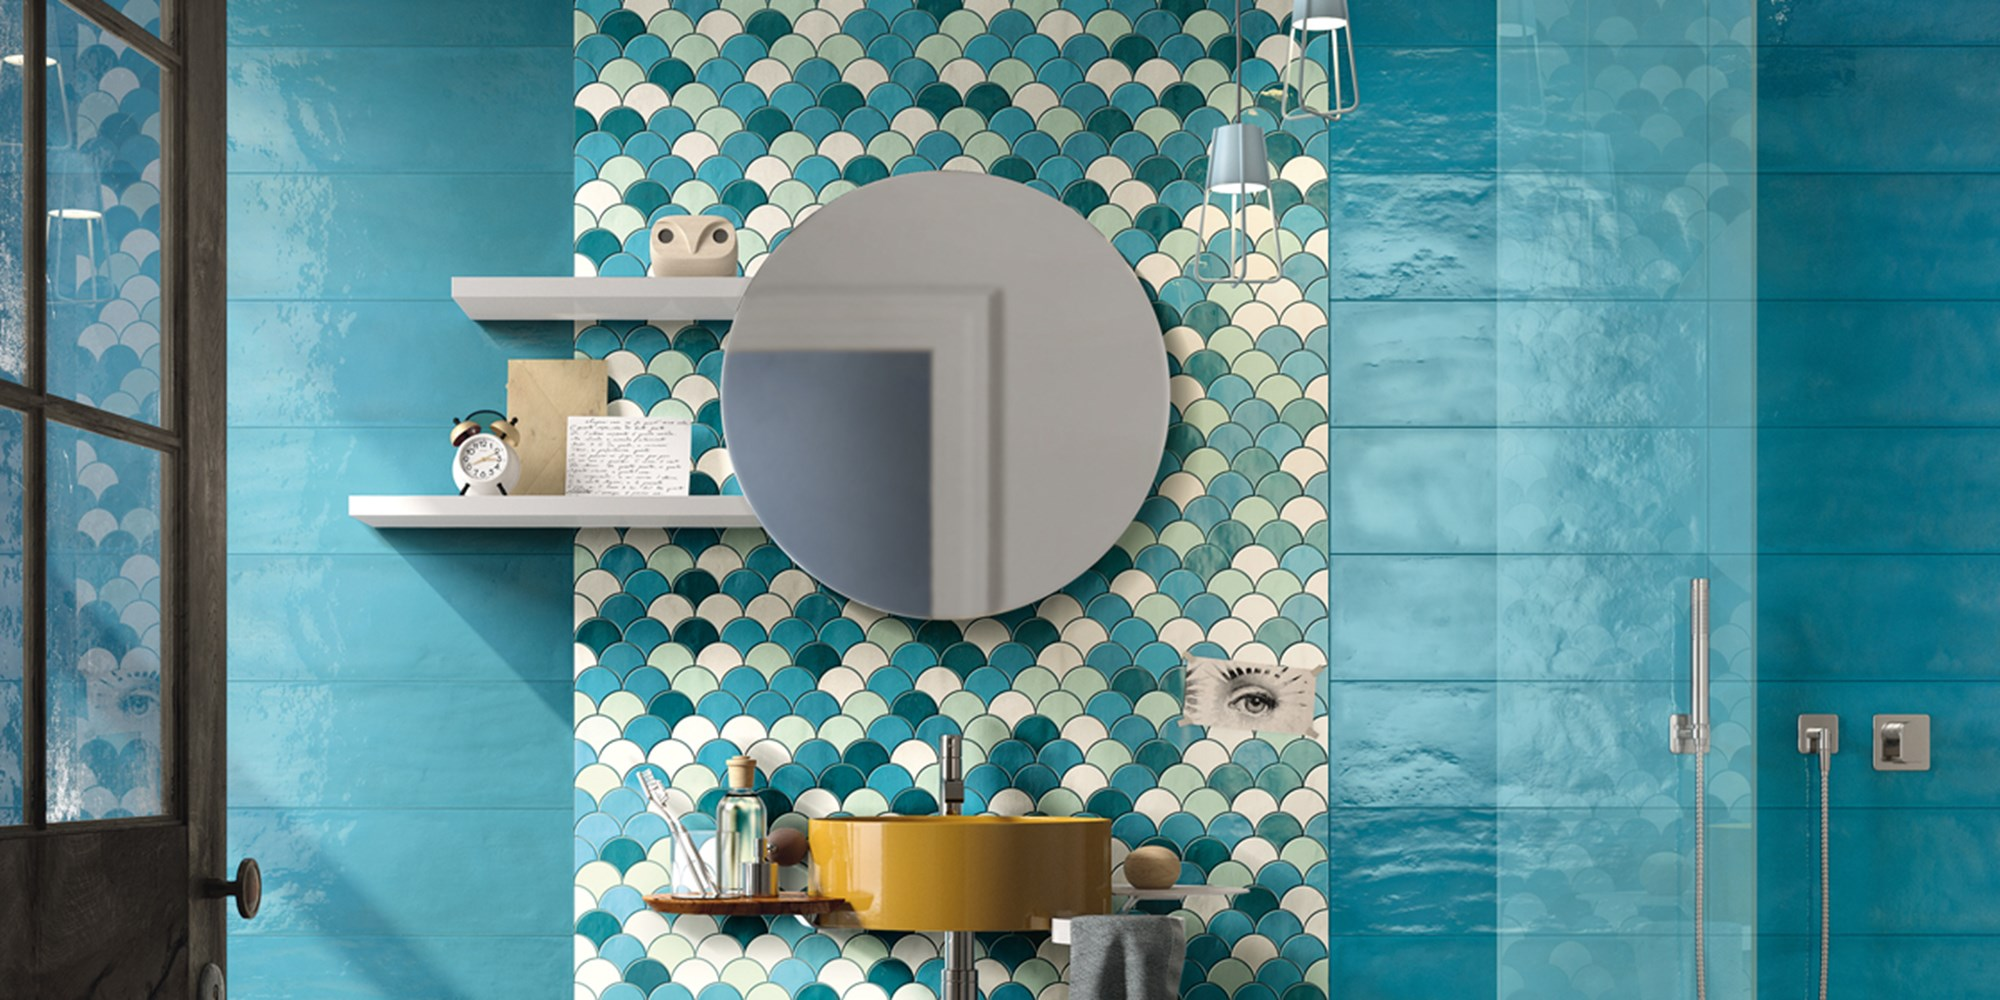 Double fired mosaic Tiles by Imola